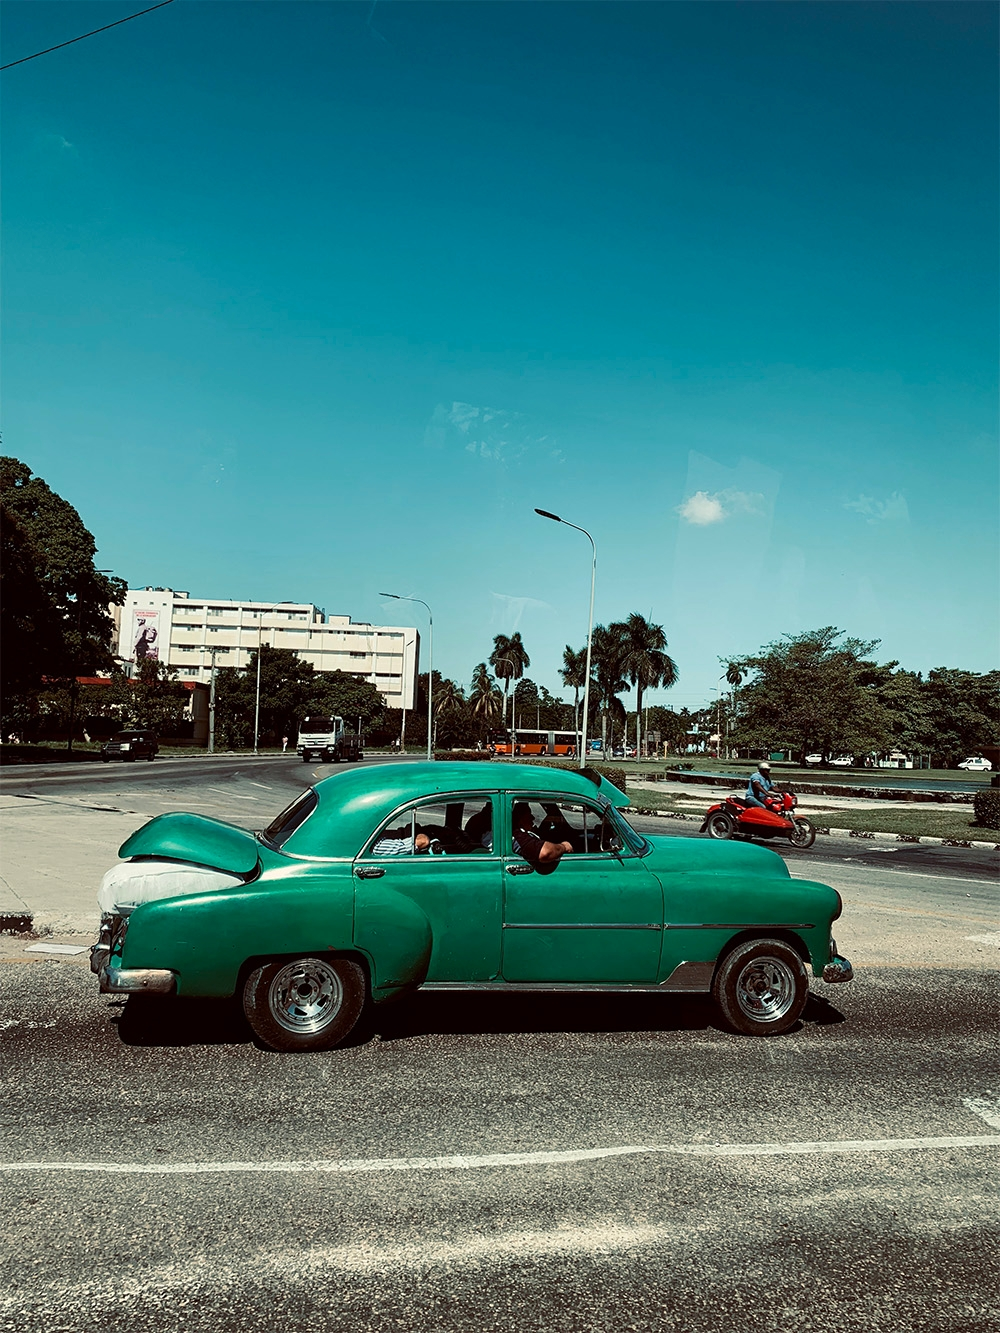 A vintage green car is parked on a quiet road in Havana